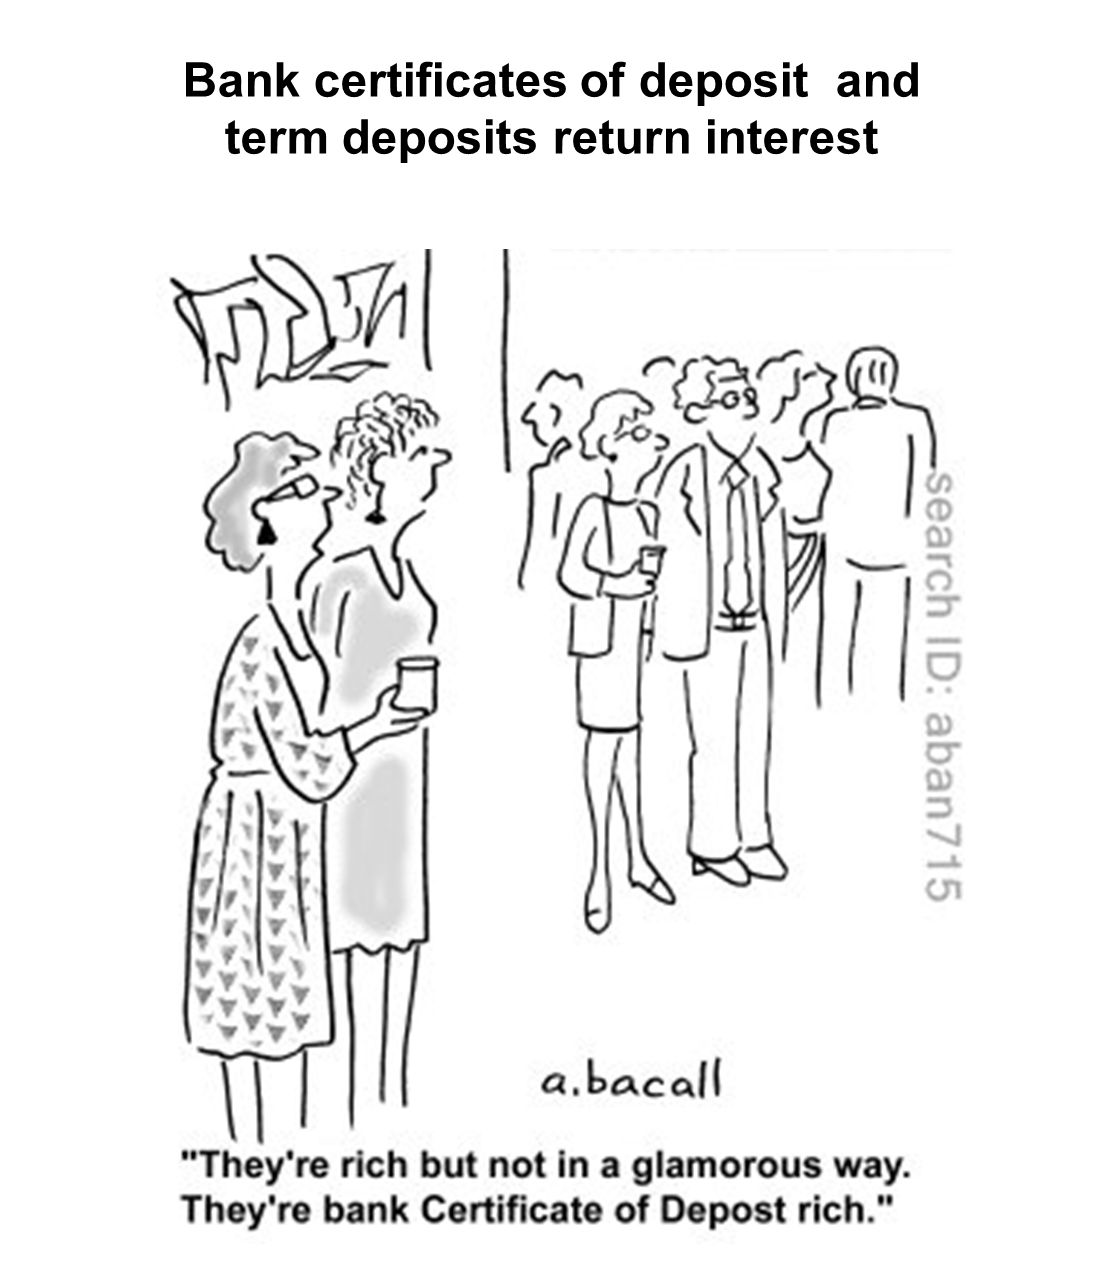 Bank certificates of deposit and term deposits return interest